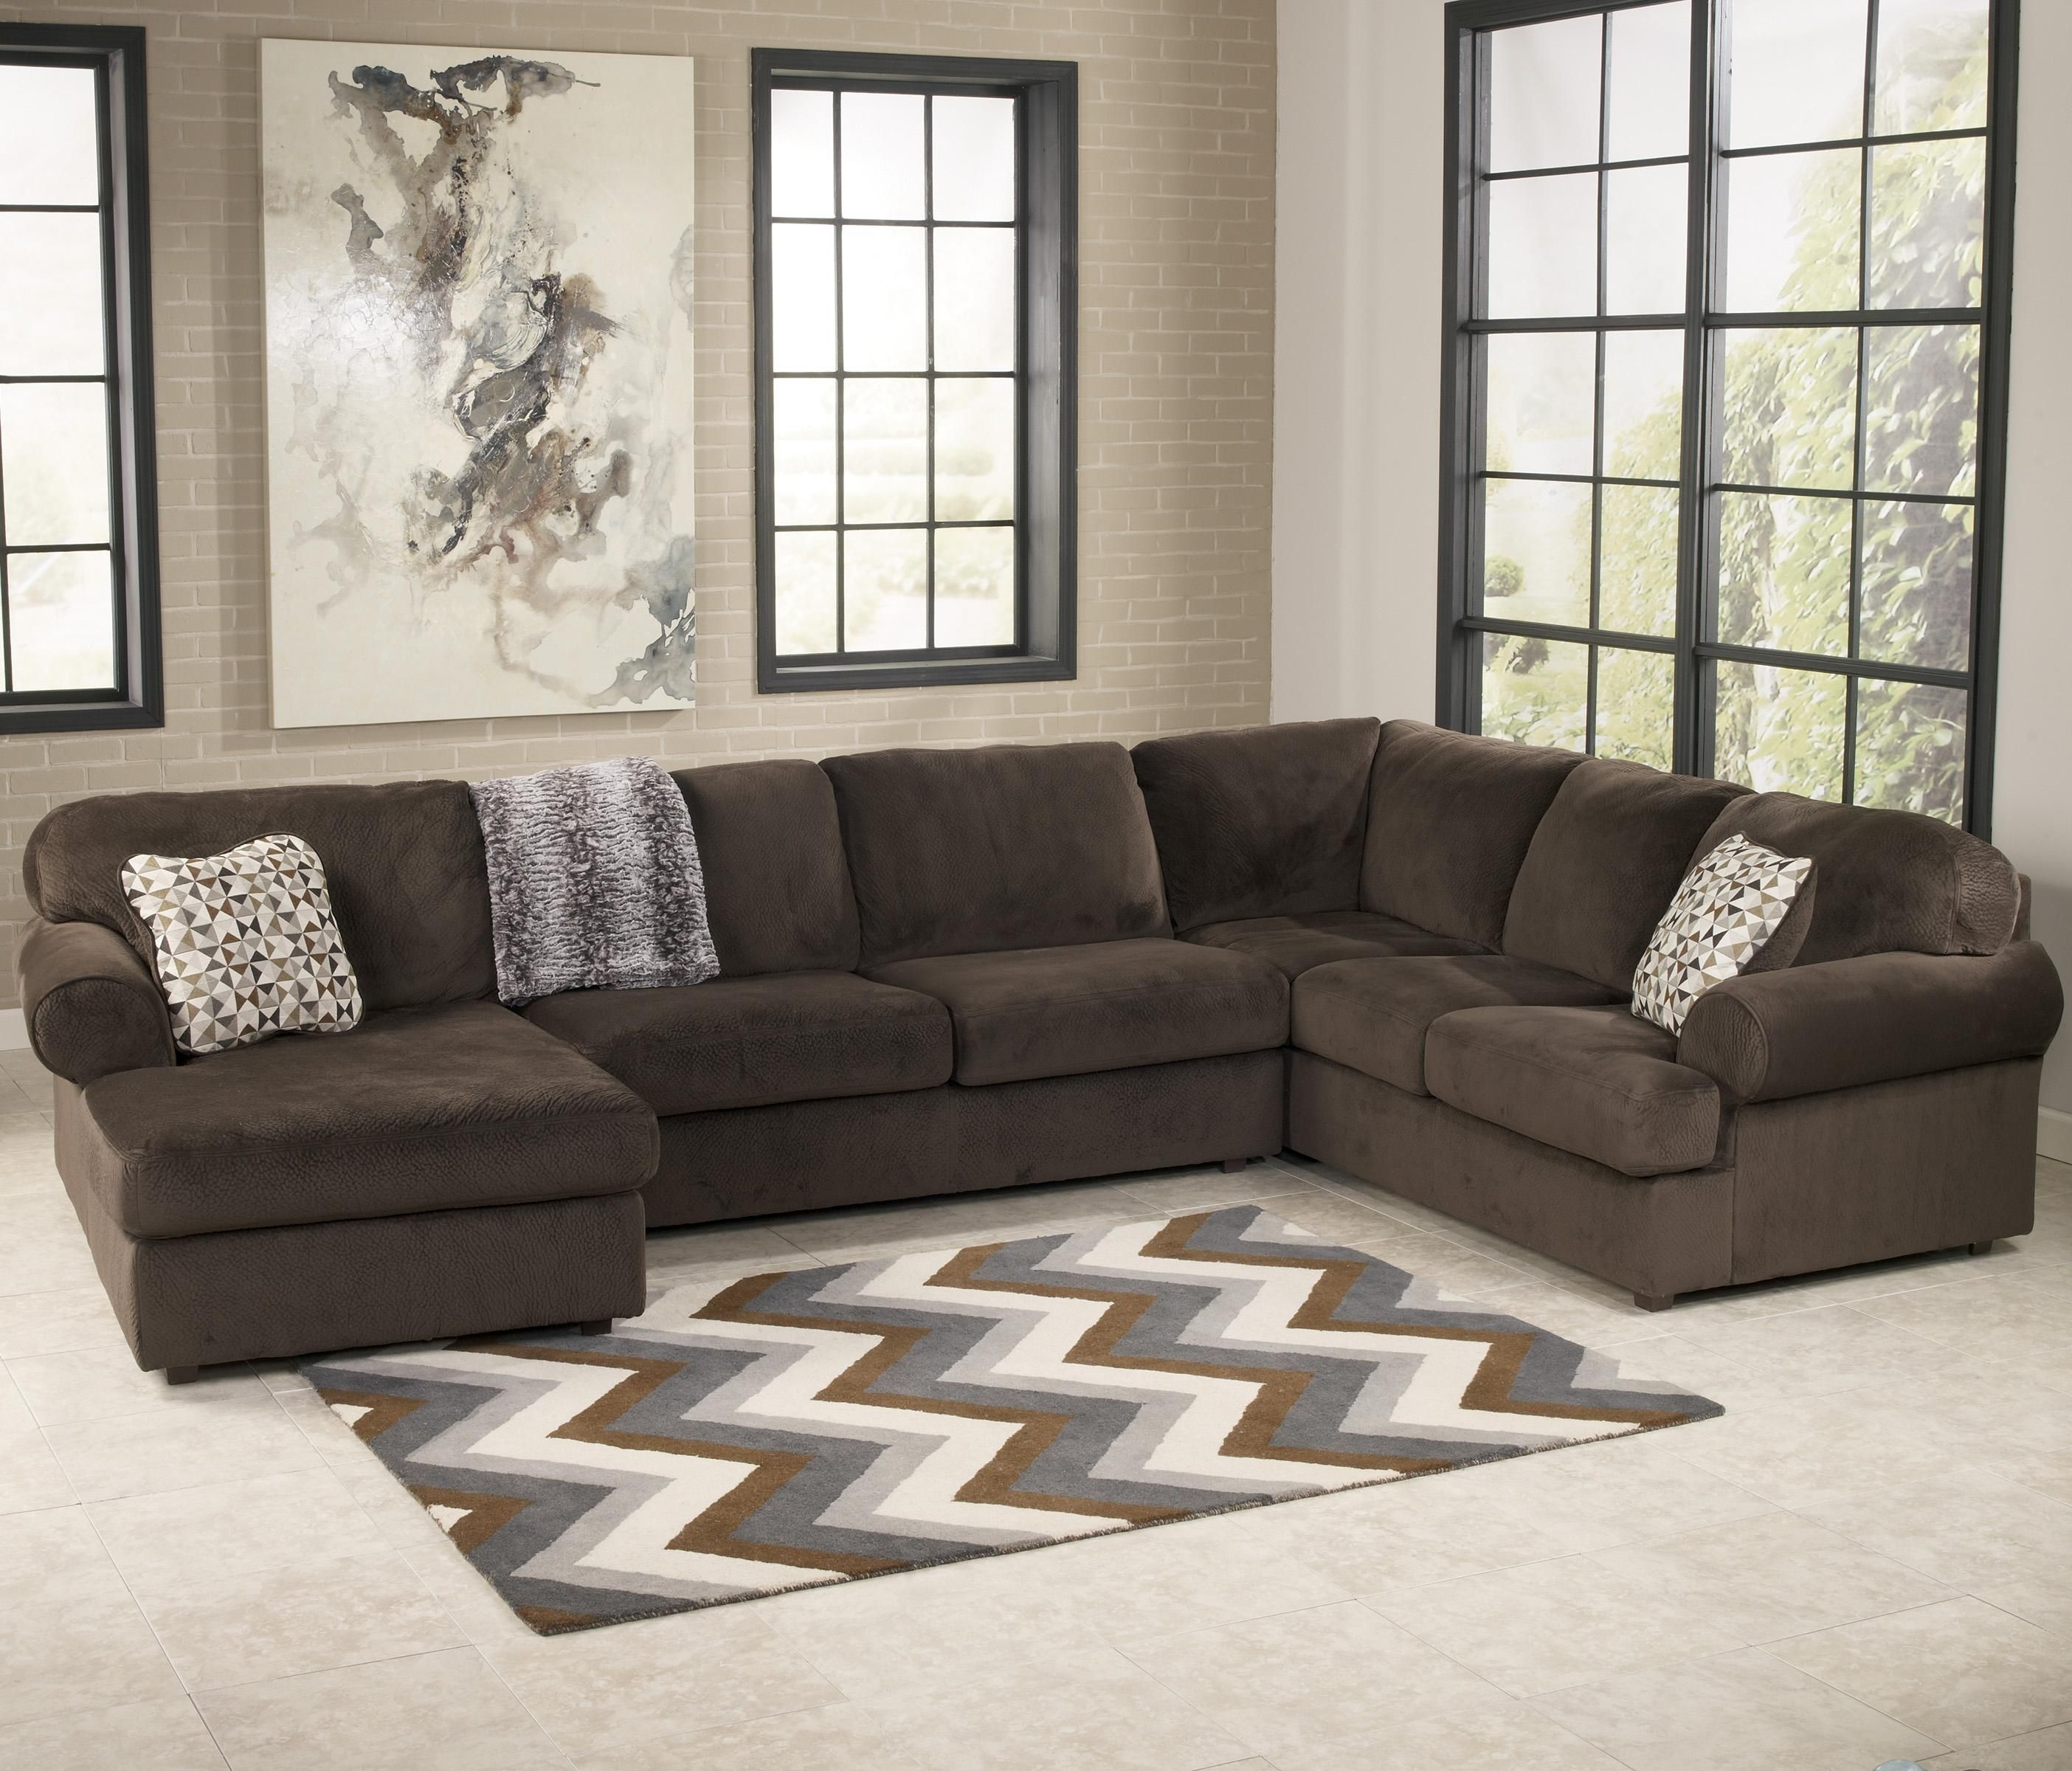 Sectional Sofas Austin Sleeper Sofa Tx Texas Leather Stock Photos Hd With Sectional Sofas At Austin (View 11 of 15)